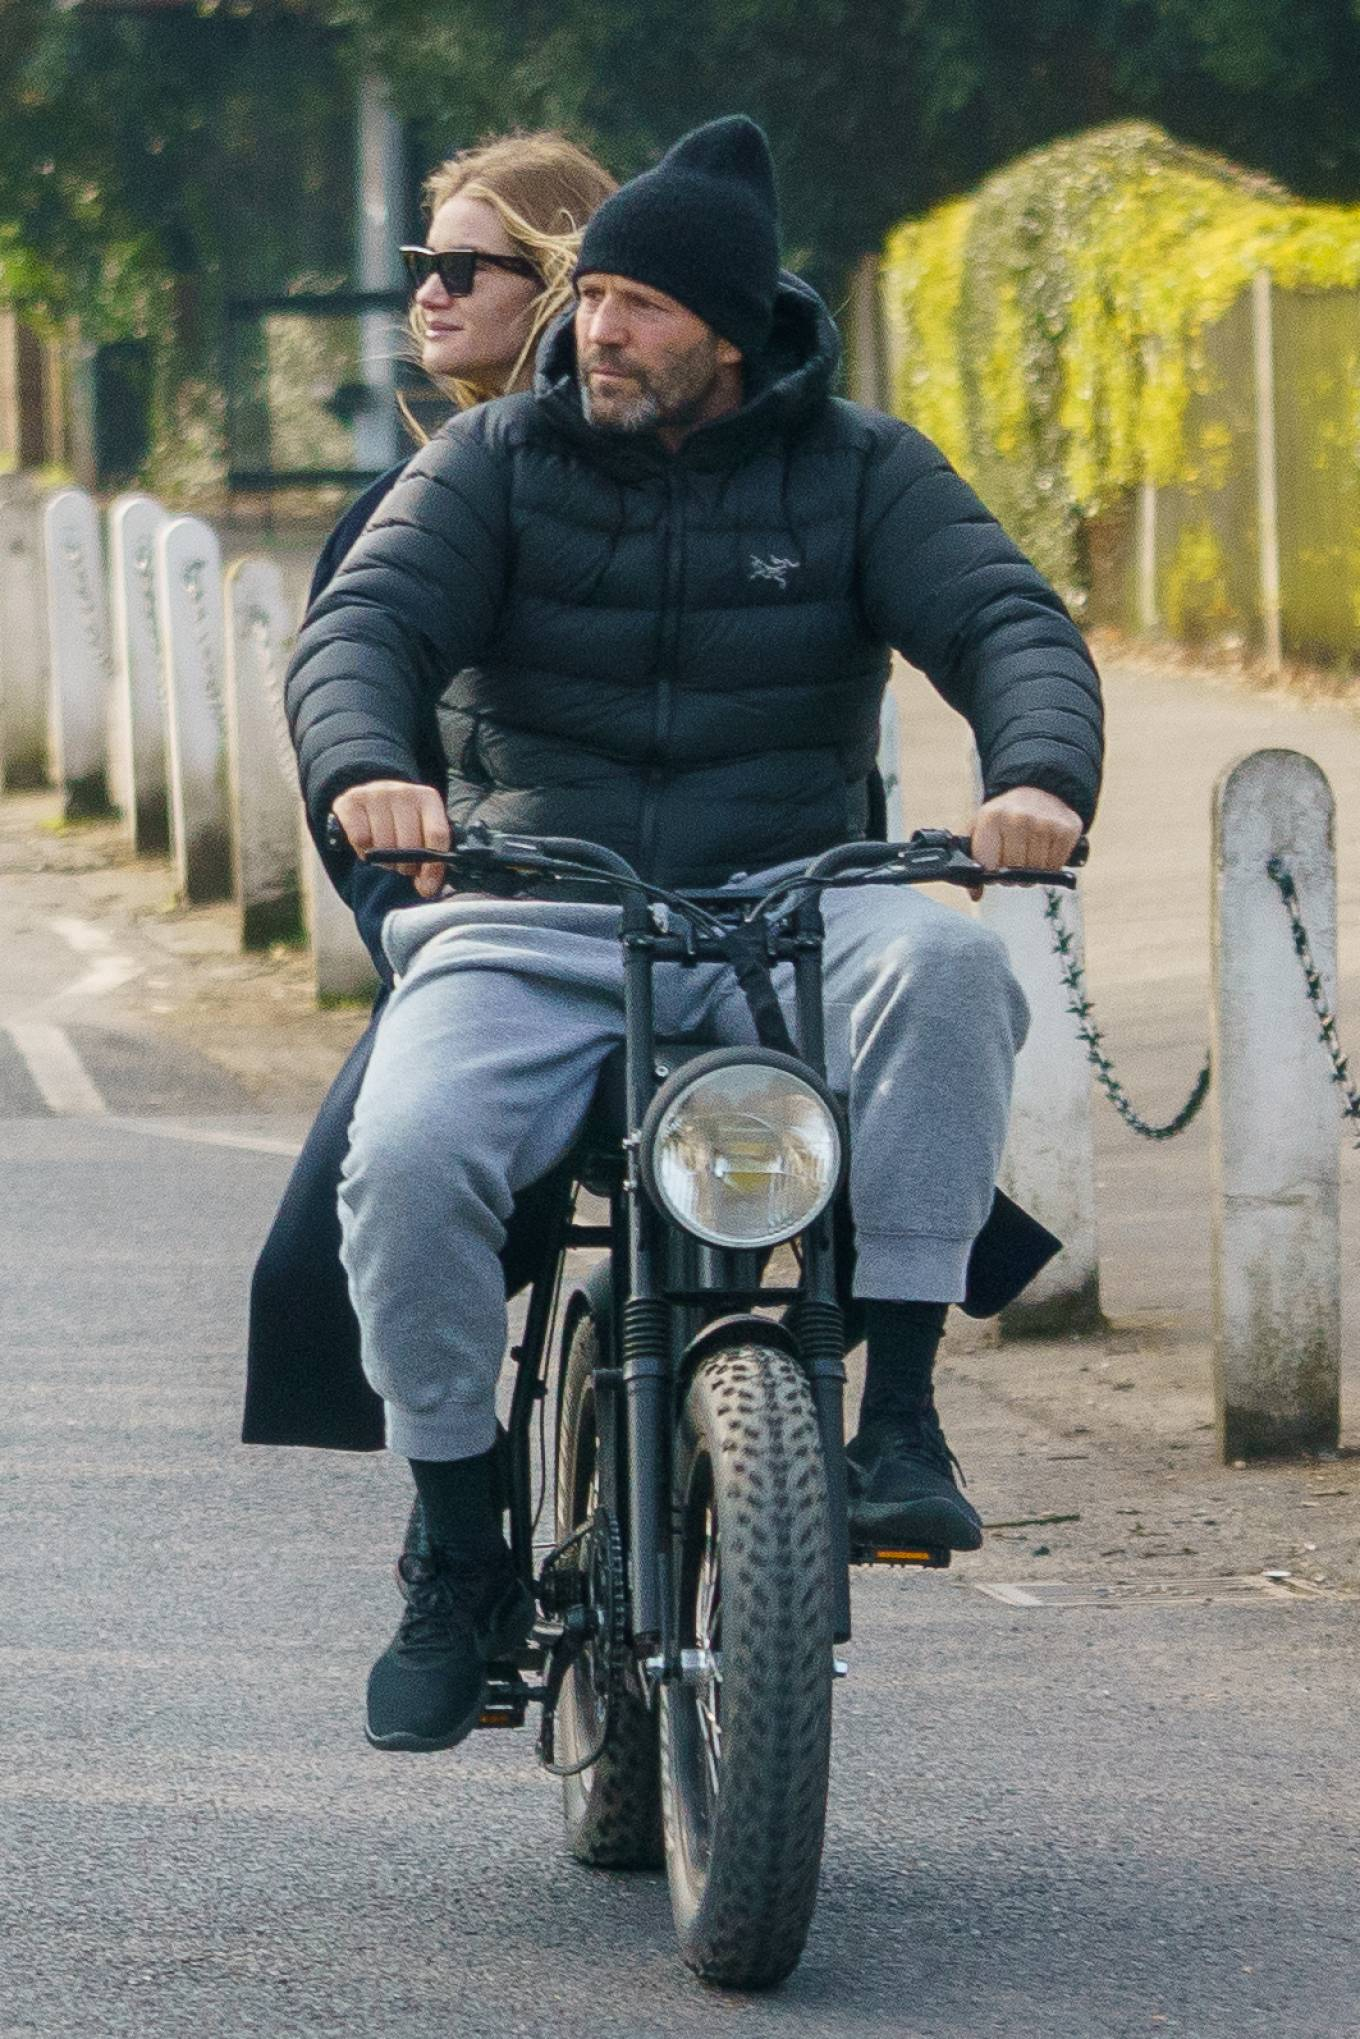 Rosie Huntington-Whiteley 2021 : Rosie Huntington-Whiteley – With Jason Statham ride electric bike in London-01